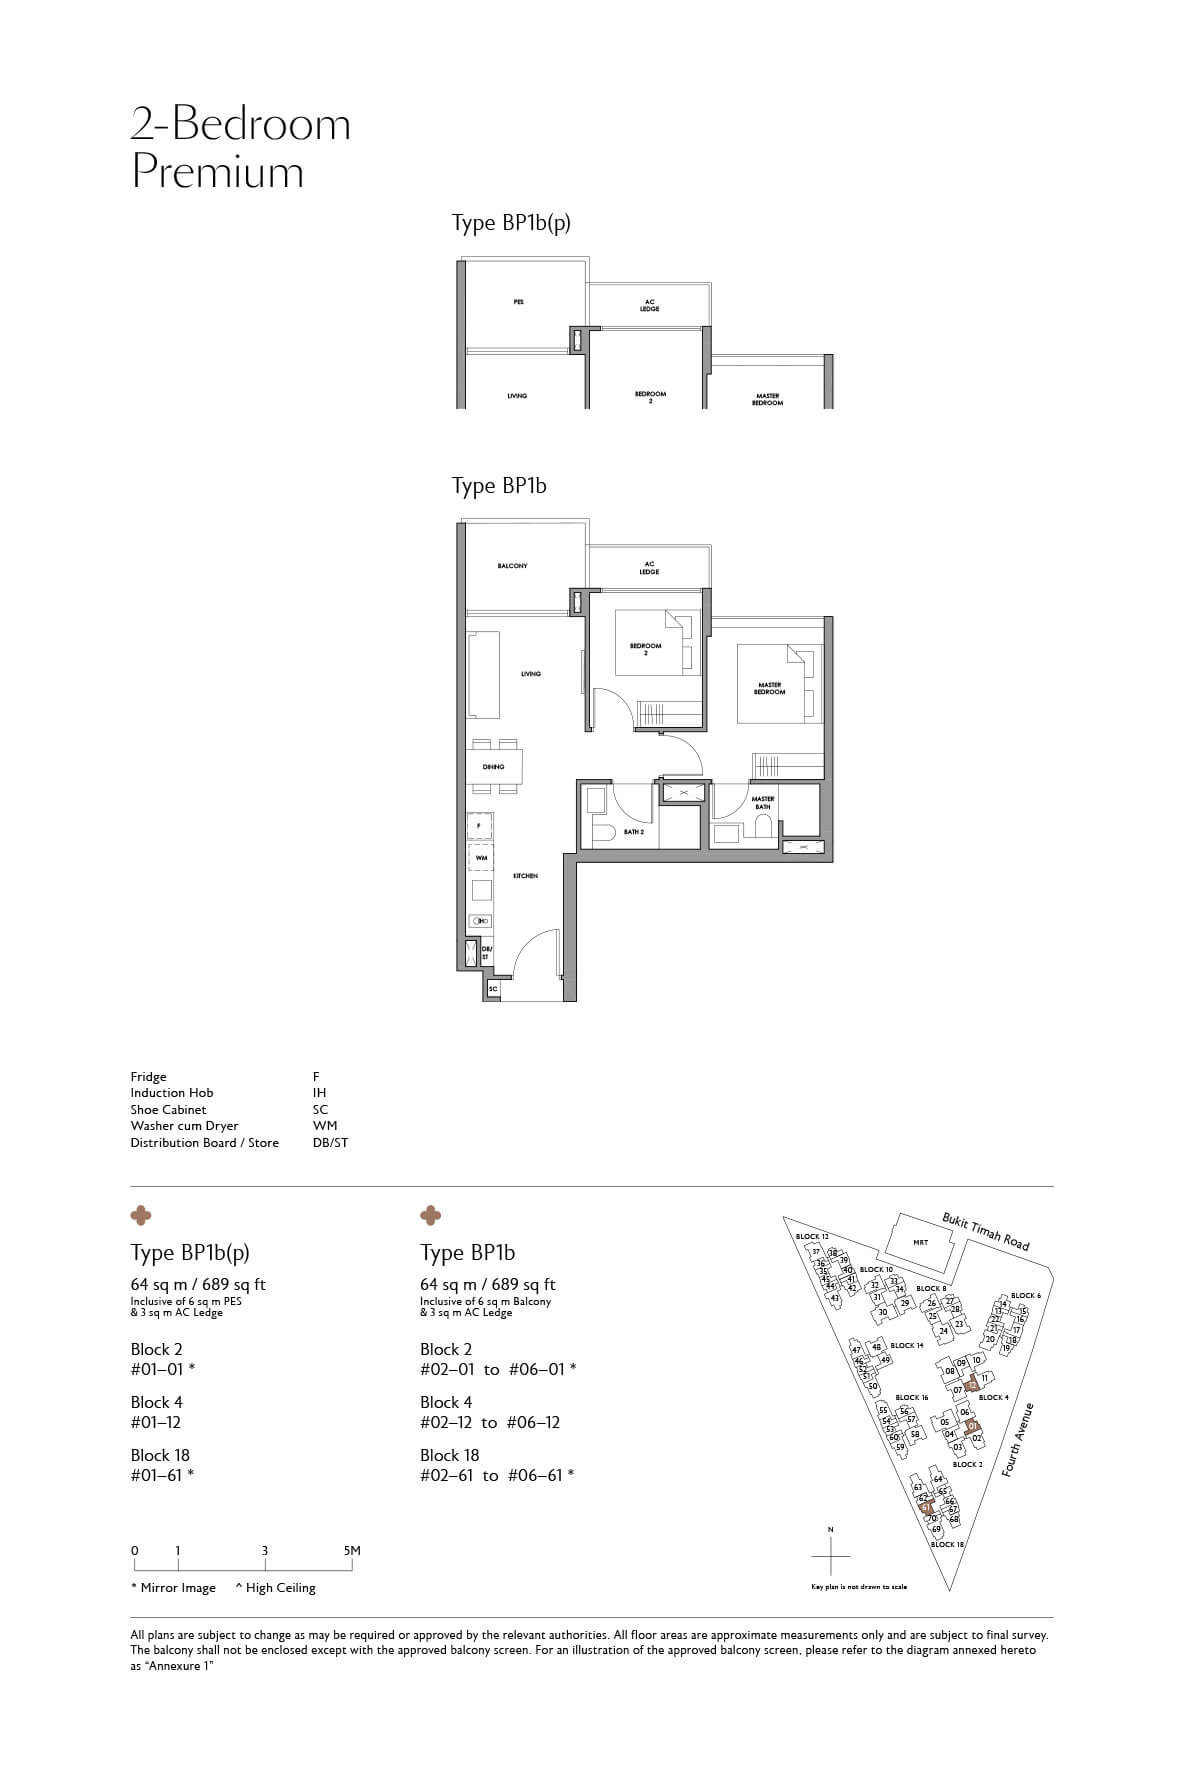 Fourth Avenue Residences Floor Plan 2 Bedroom Premium Type BP1b